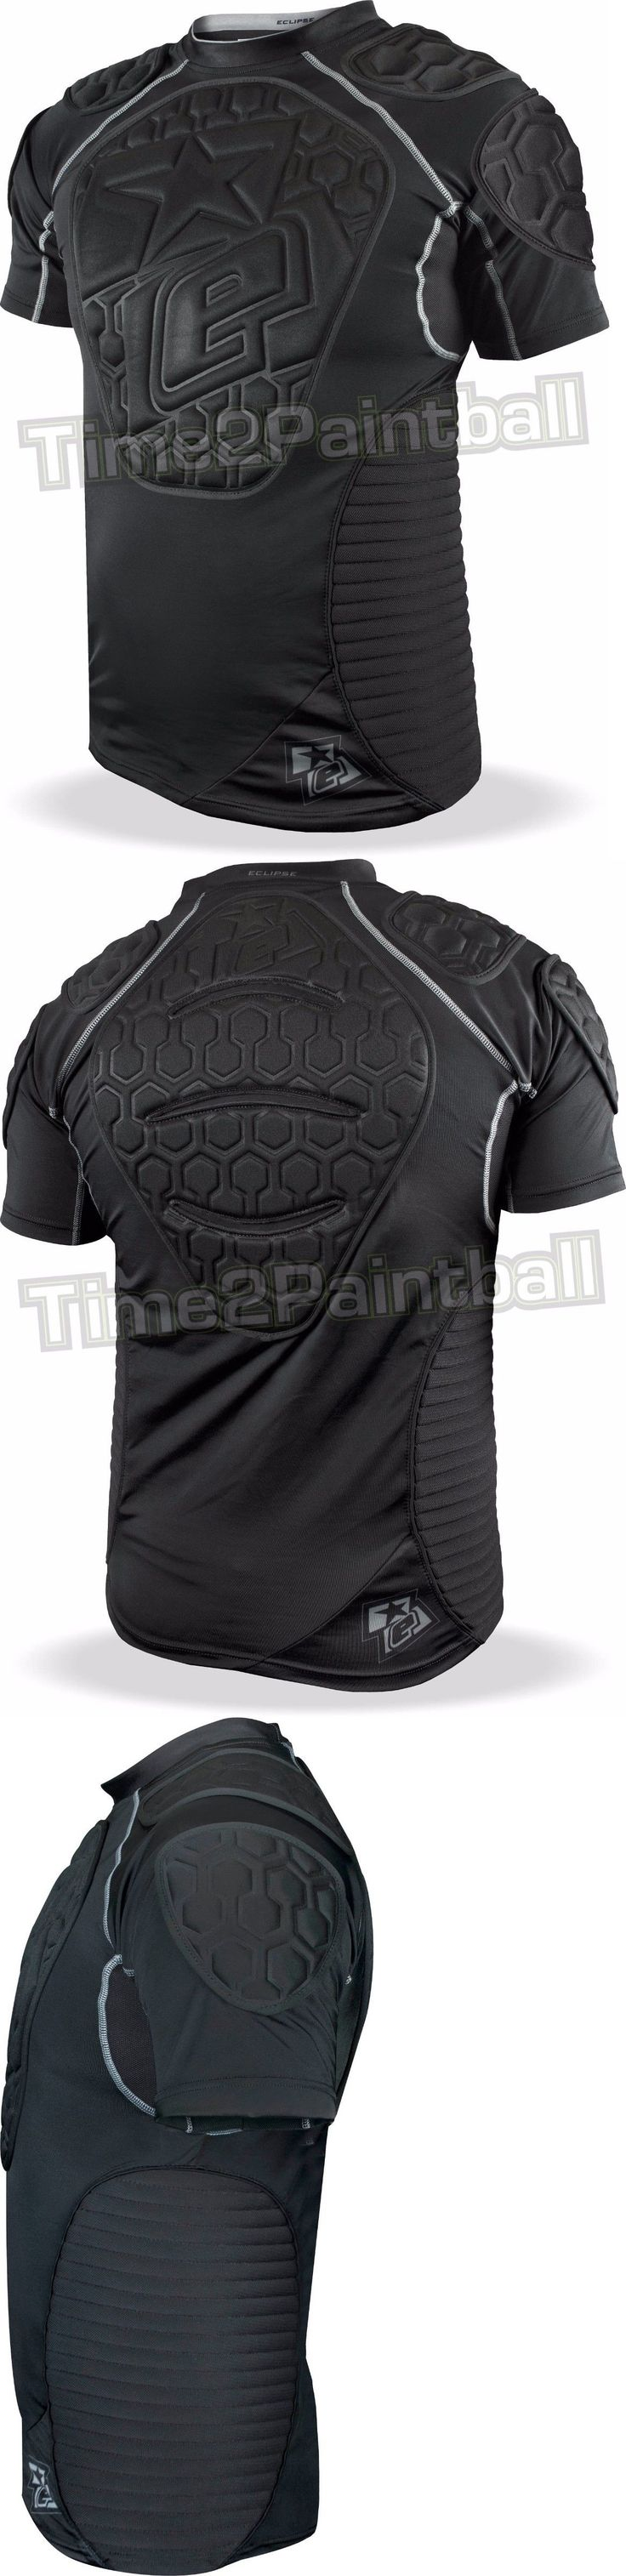 Jerseys and Shirts 165939: Planet Eclipse Overload Gen2 Chest Protector Jersey - Large **Free Shipping** -> BUY IT NOW ONLY: $69.95 on eBay!